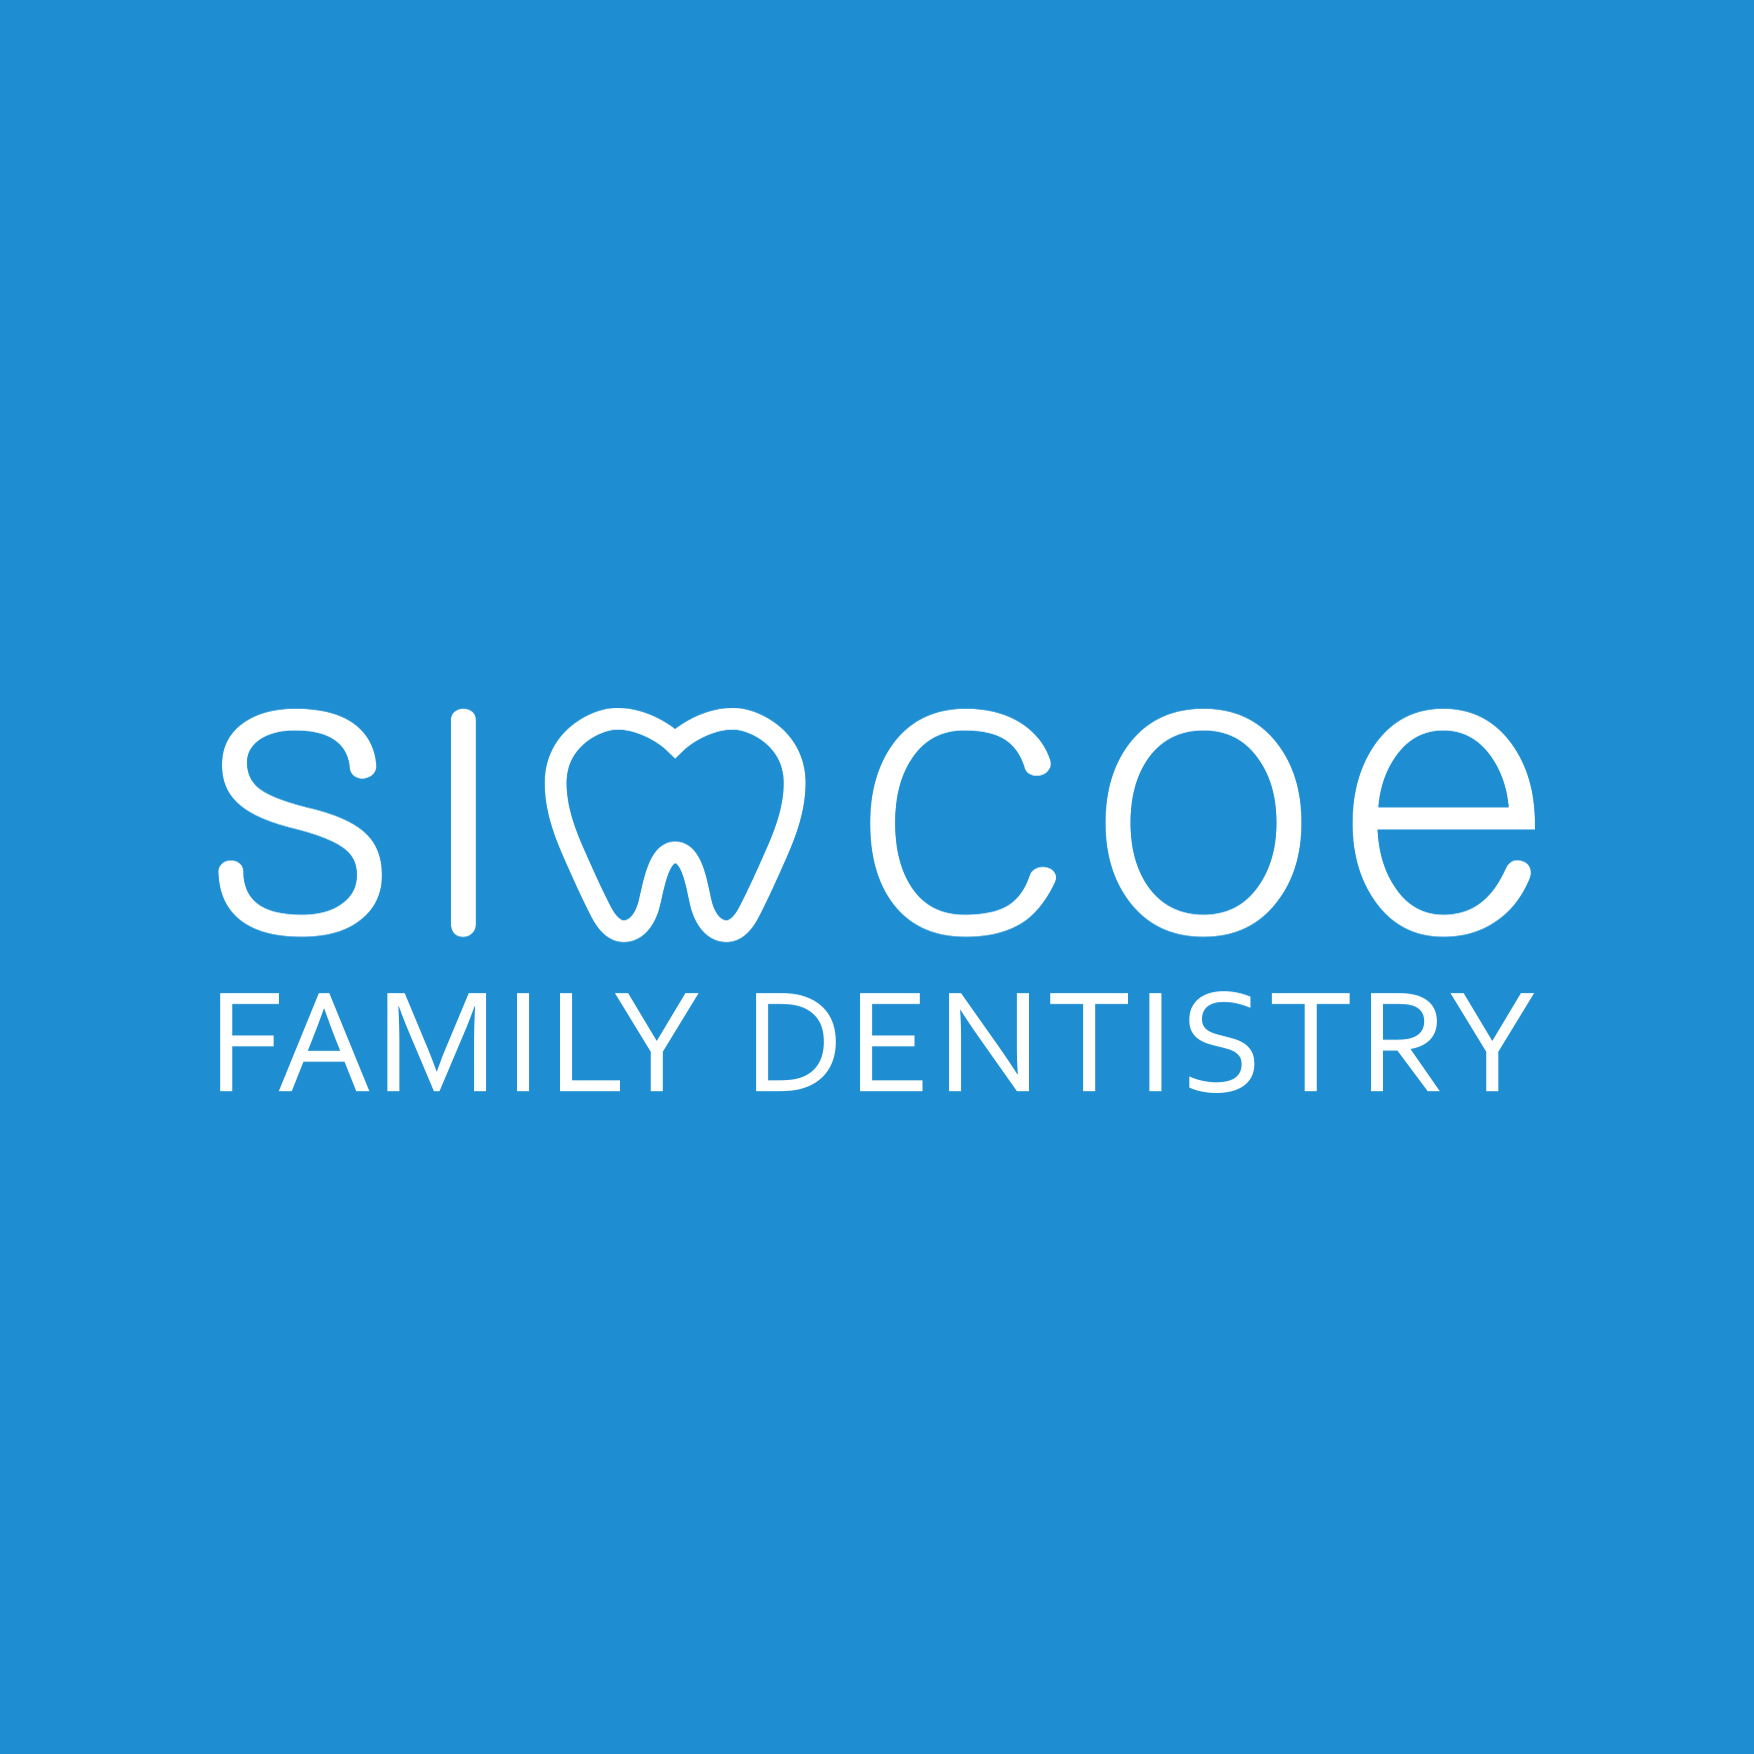 Simcoe Family Dentistry Announces Opening Of Non-Essential Services To Families In Barrie and Simcoe County During Stage 3 Of Ontario's Reopening